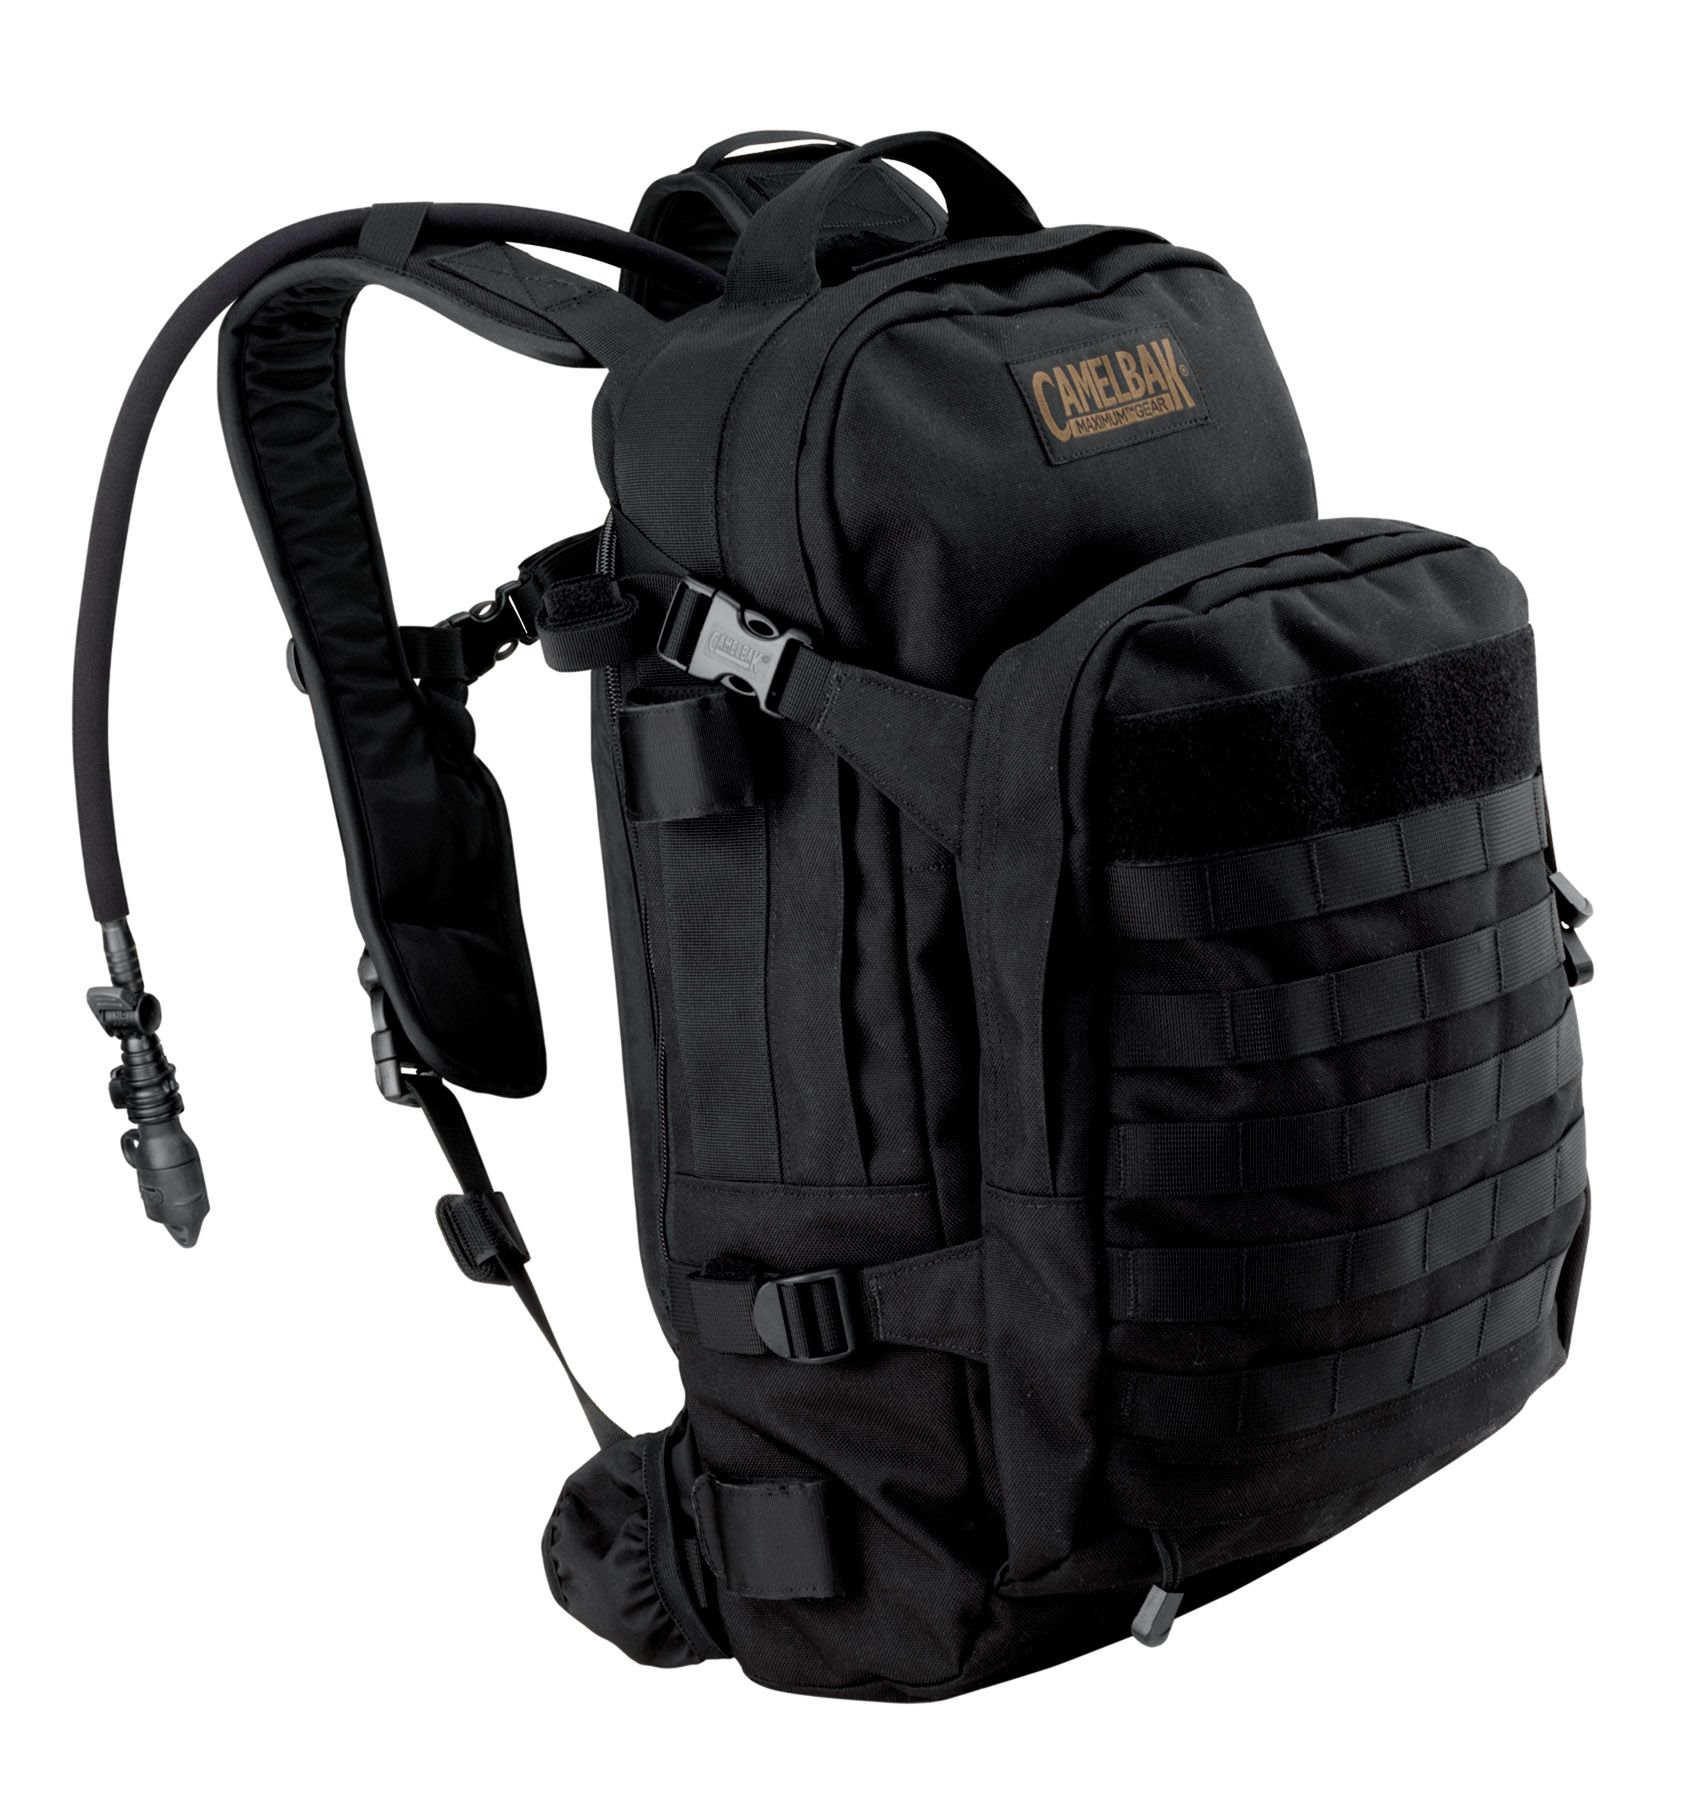 Large Capacity Backpack Outdoor Travel Daypacks with Pocket Shits /& Giggles